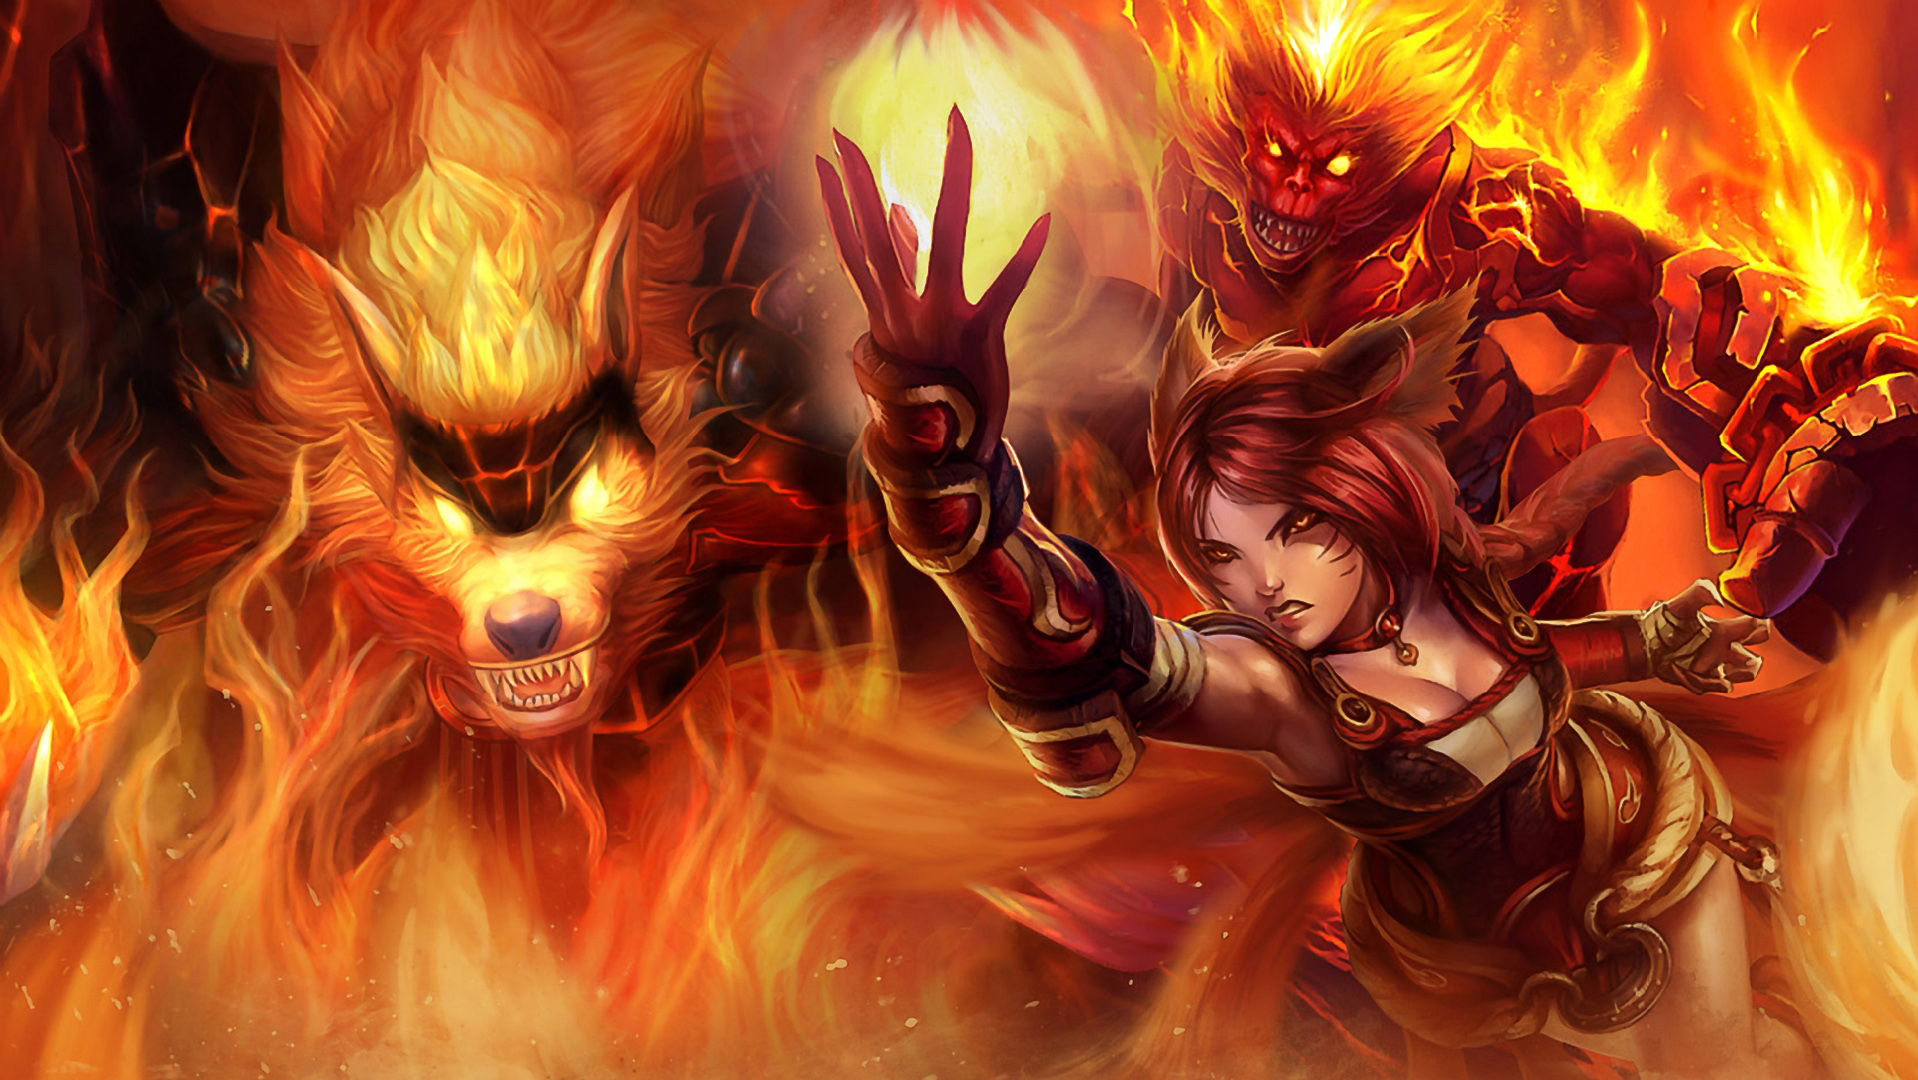 Draven And Girls Wallpaper Fire Trio Lolwallpapers